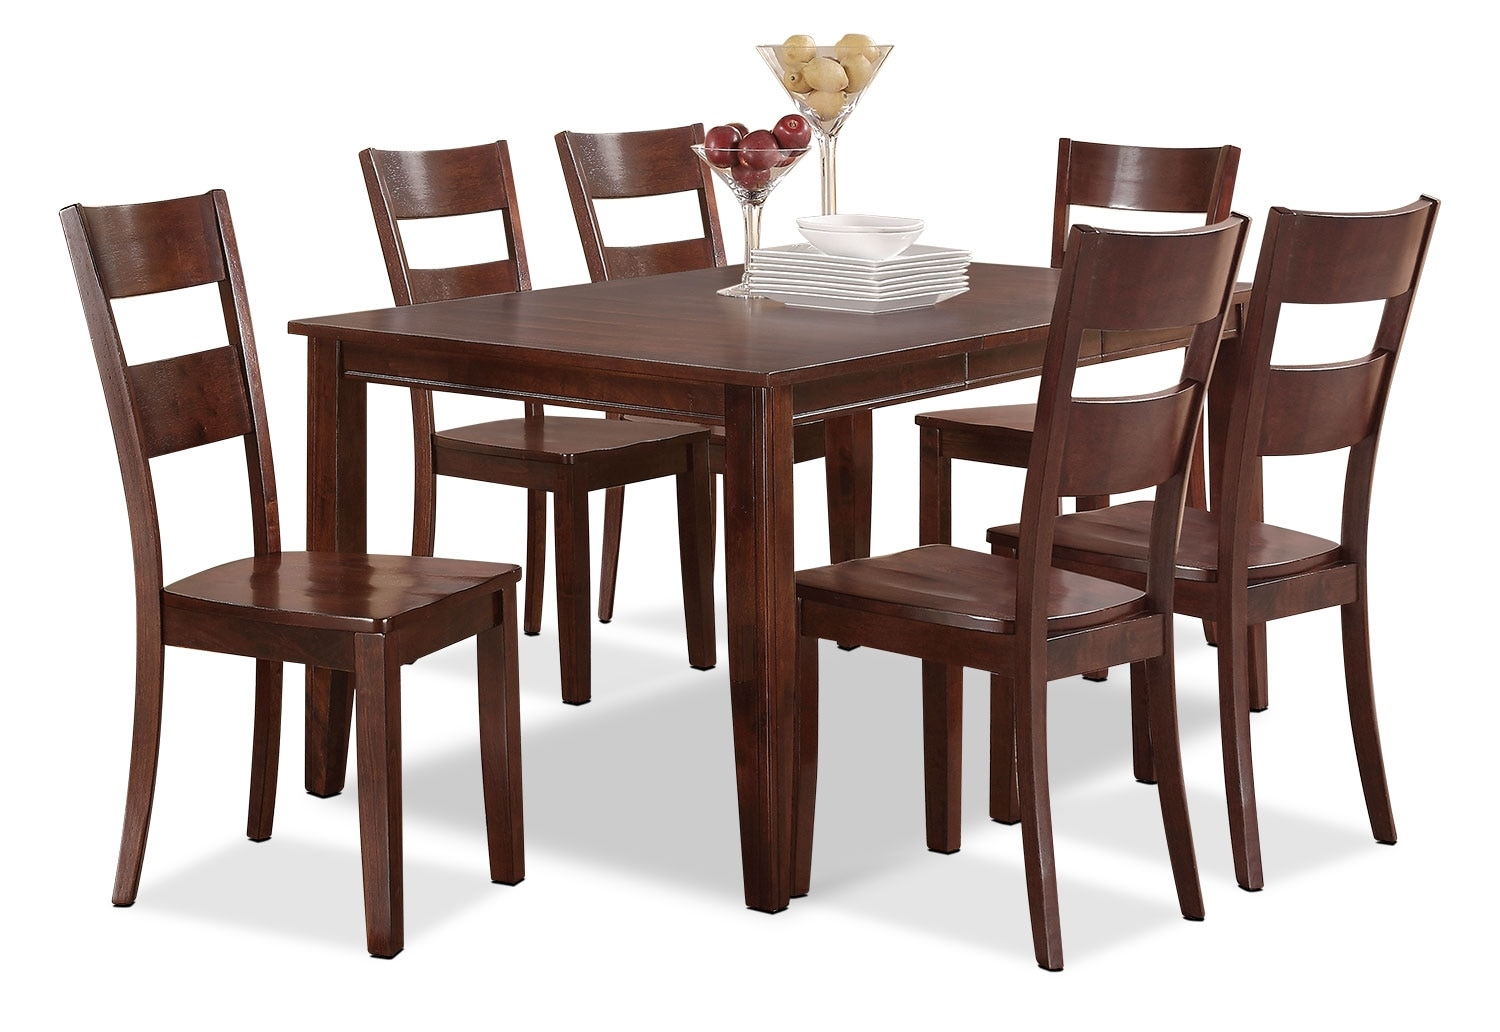 Dining Room Furniture - Holland 7-Piece Dinette Set - Brown Cherry